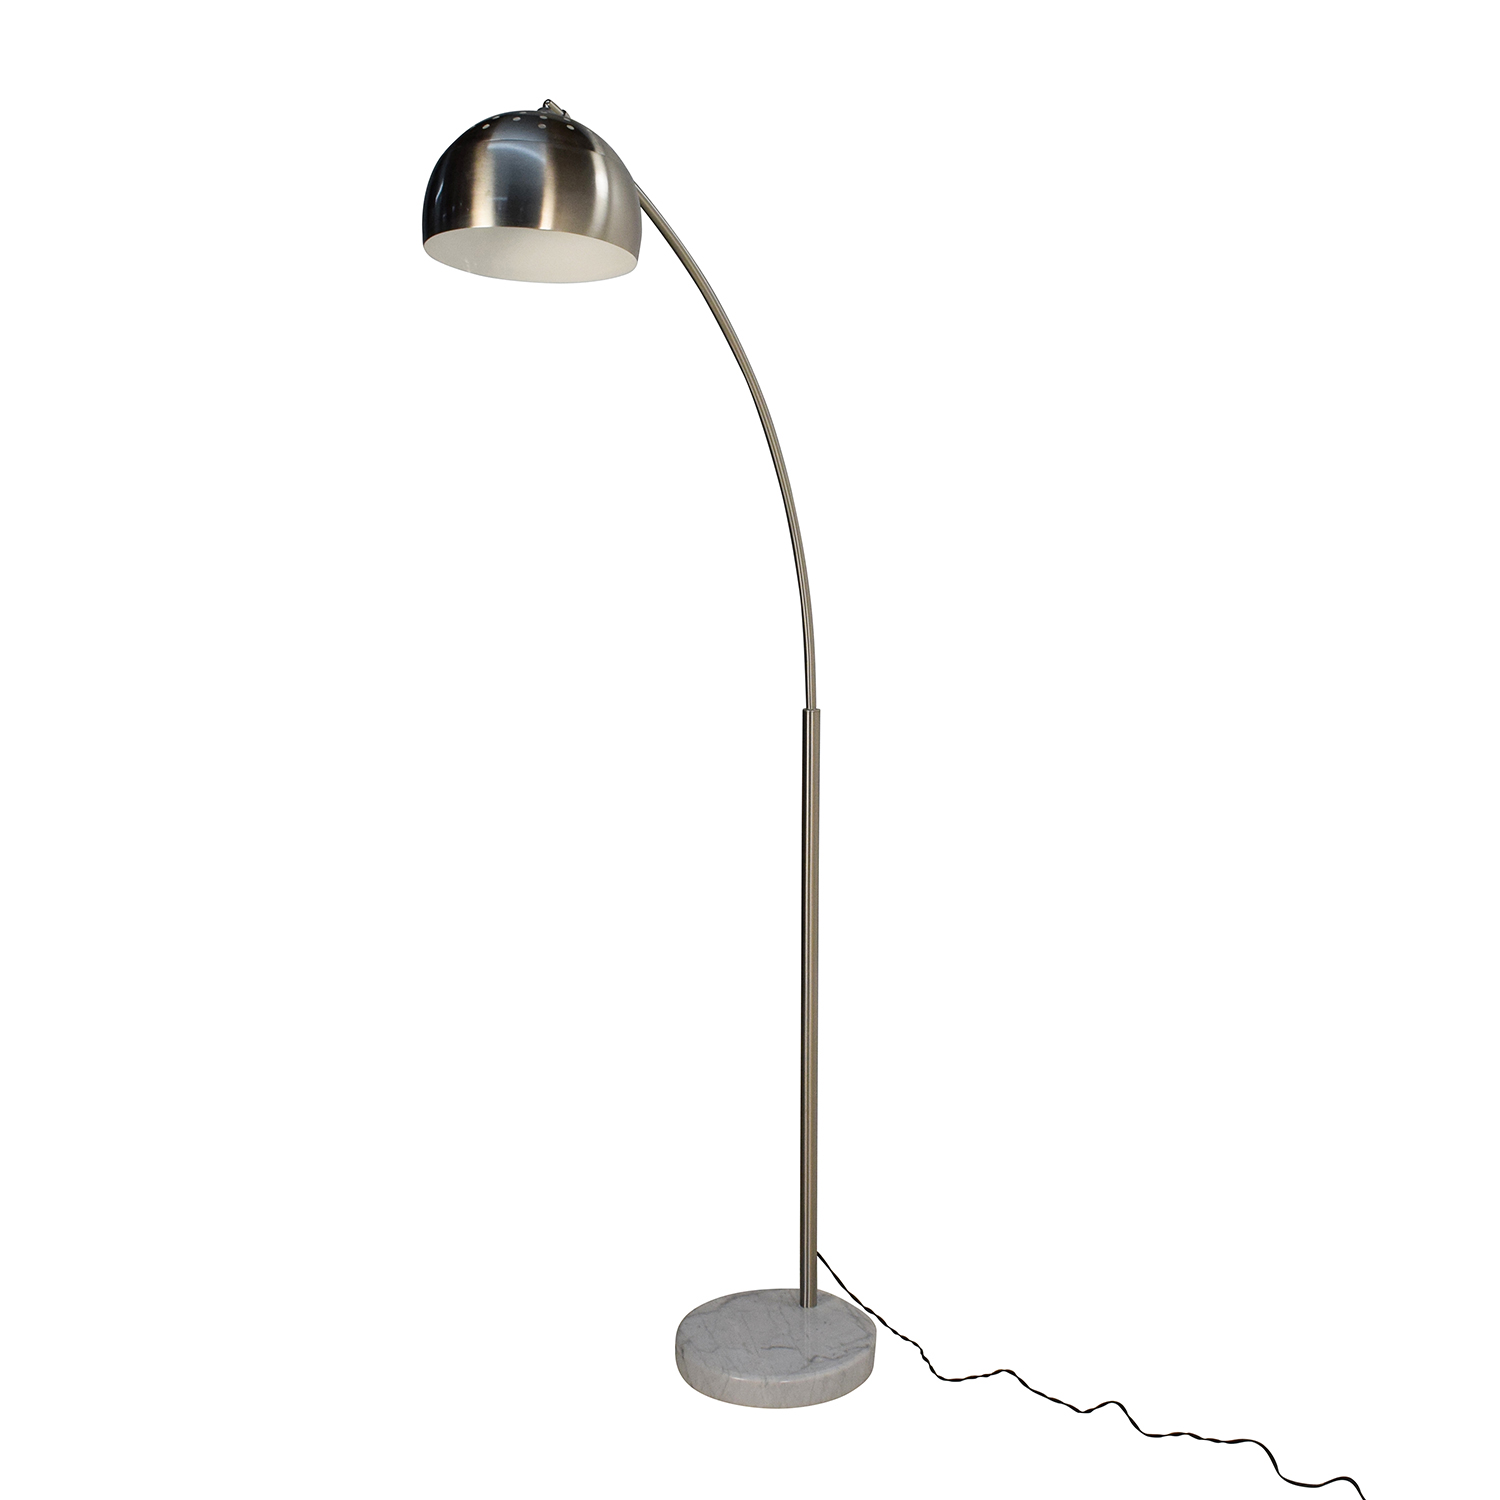 40 off overstock overstock arch 1 silver floor lamp decor for Overstock silver floor lamp